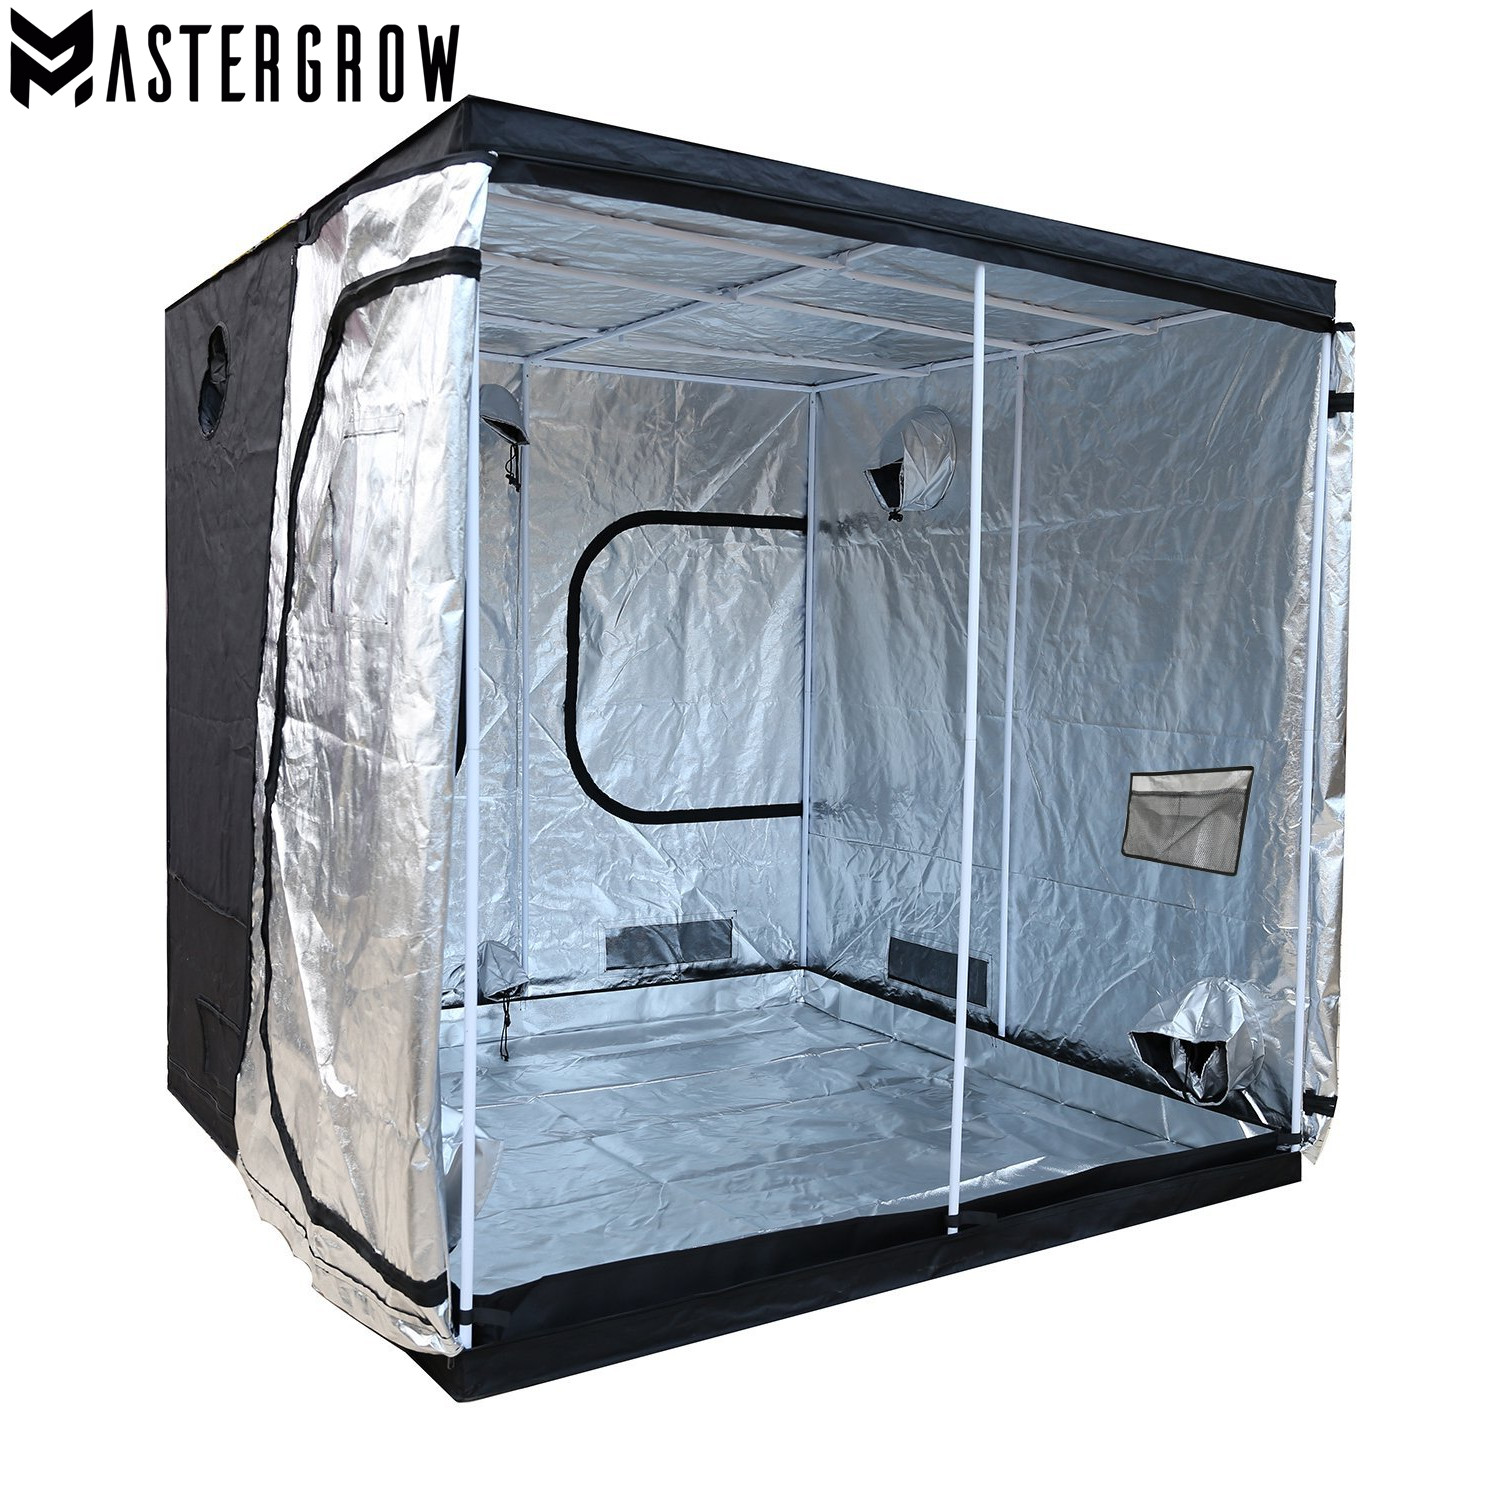 MasterGrow 240X240X200cm Indoor Hydroponics Grow Tent,Grow Room Box Plant Growing, Reflective Mylar Non Toxic Garden Greenhouses